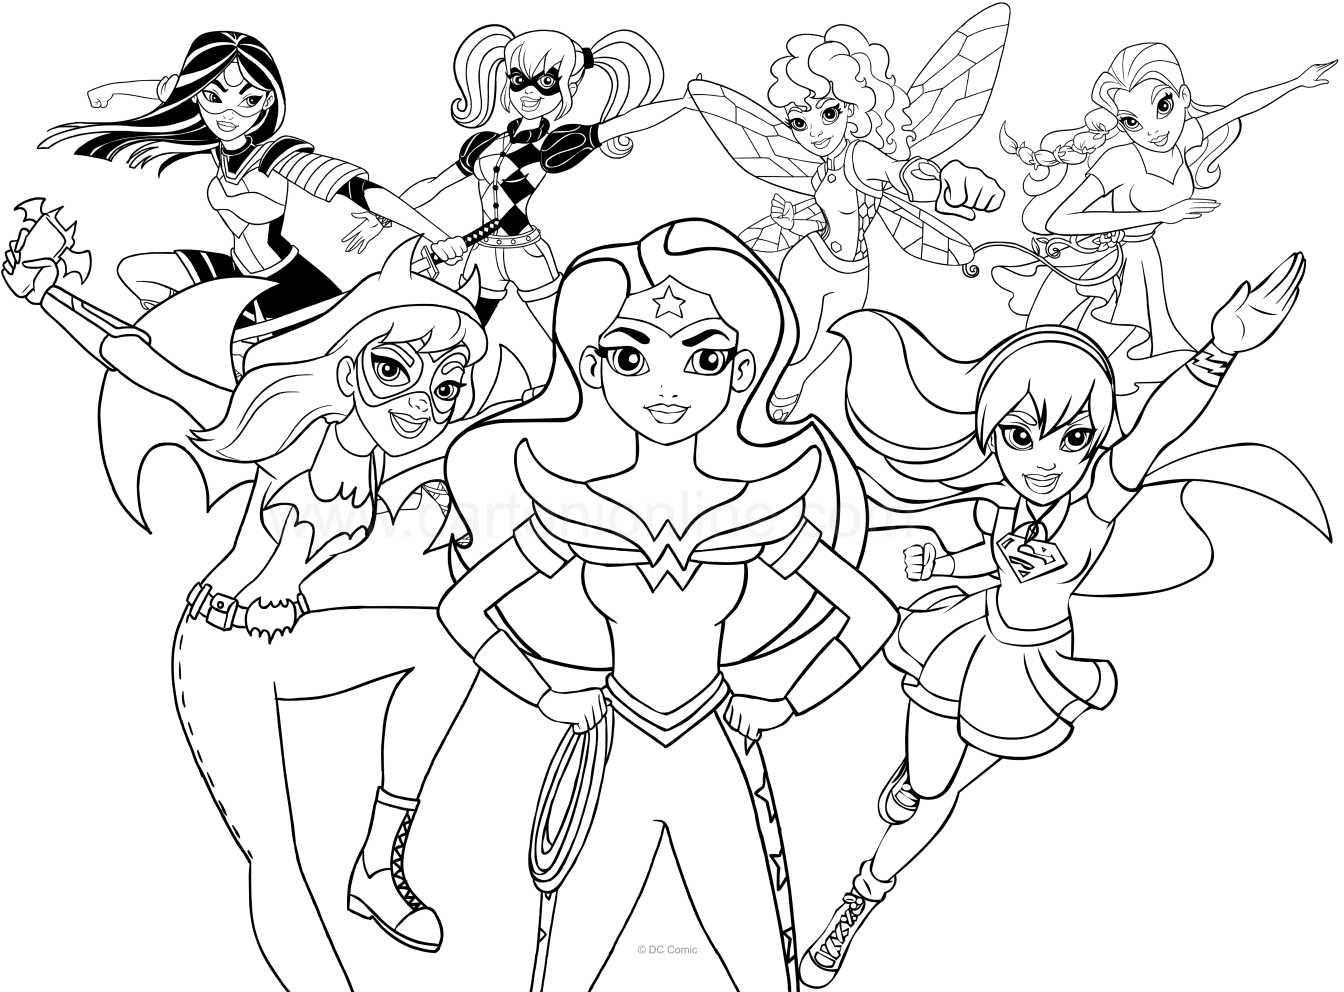 dc superhero coloring pages DC Superhero Girls coloring page dc superhero coloring pages